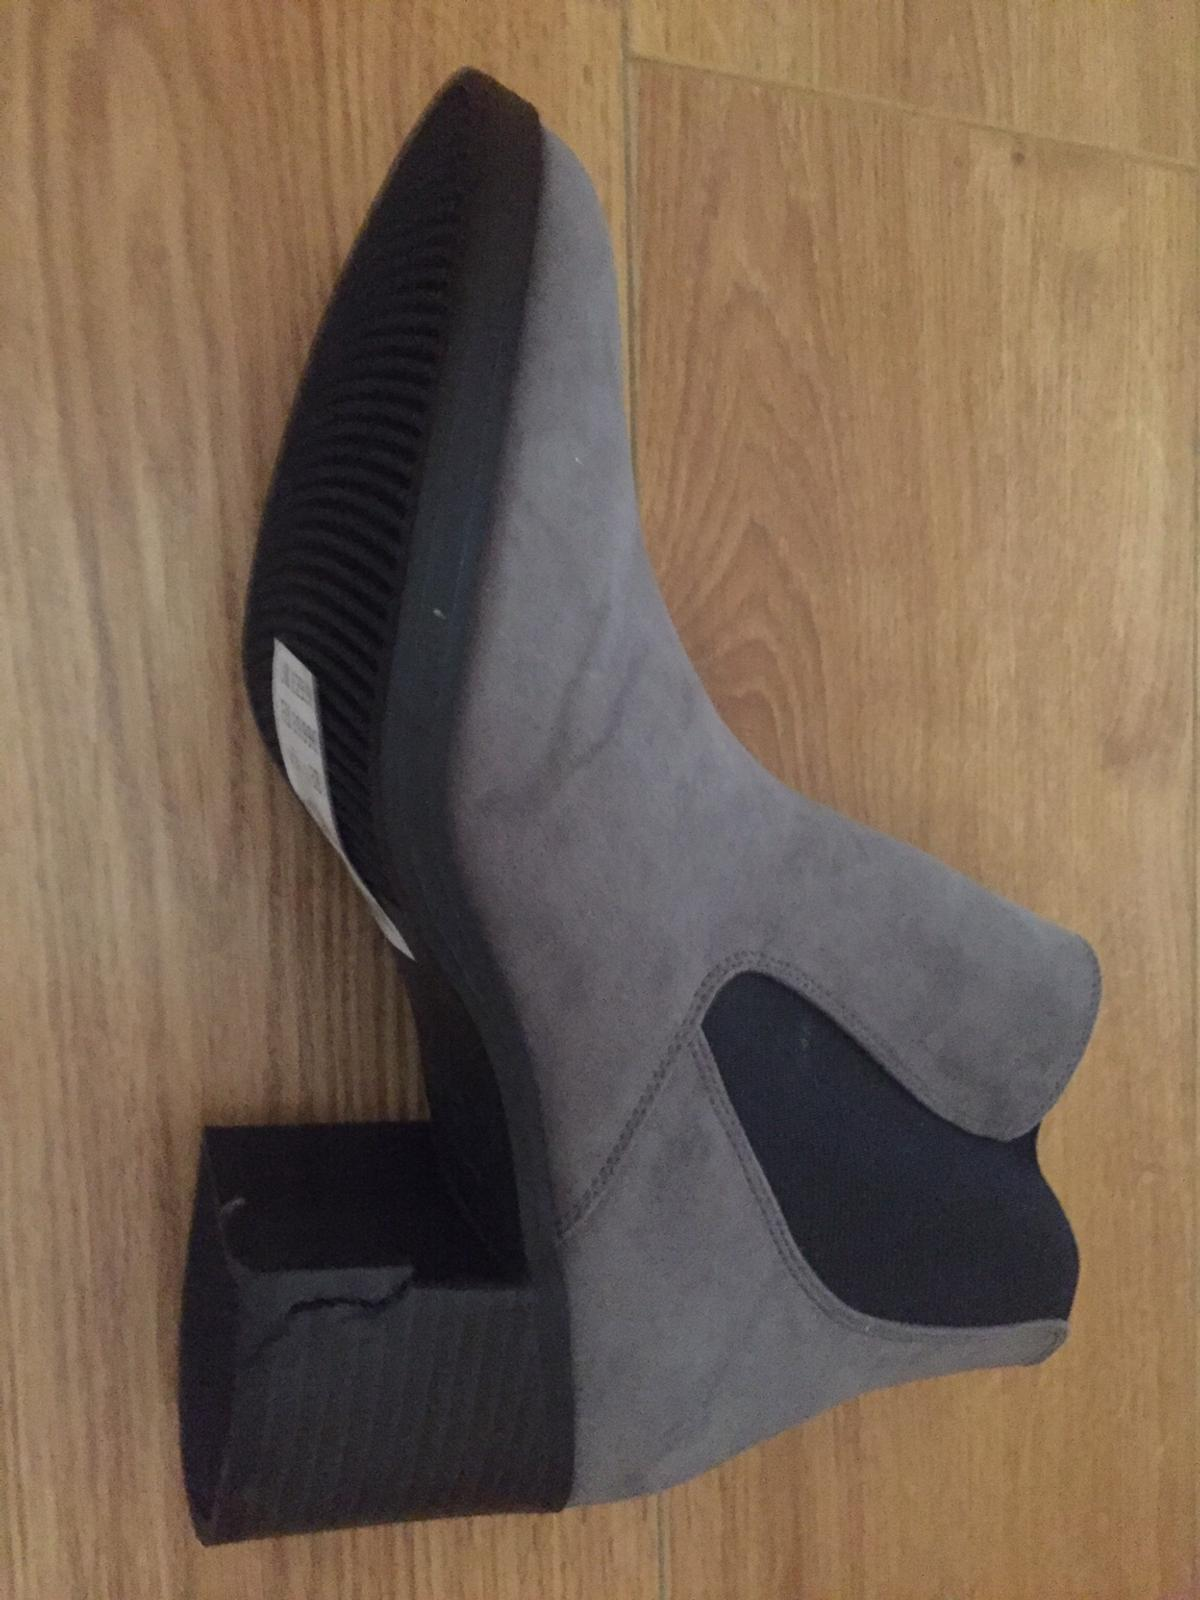 Womens Grey suedette chelsea ankle boots BRAND NEW - never worn Slight damage on one boot heel as can be seen in pictures. Newlook Uk Size 5 (Eu 38) RRP £29.99